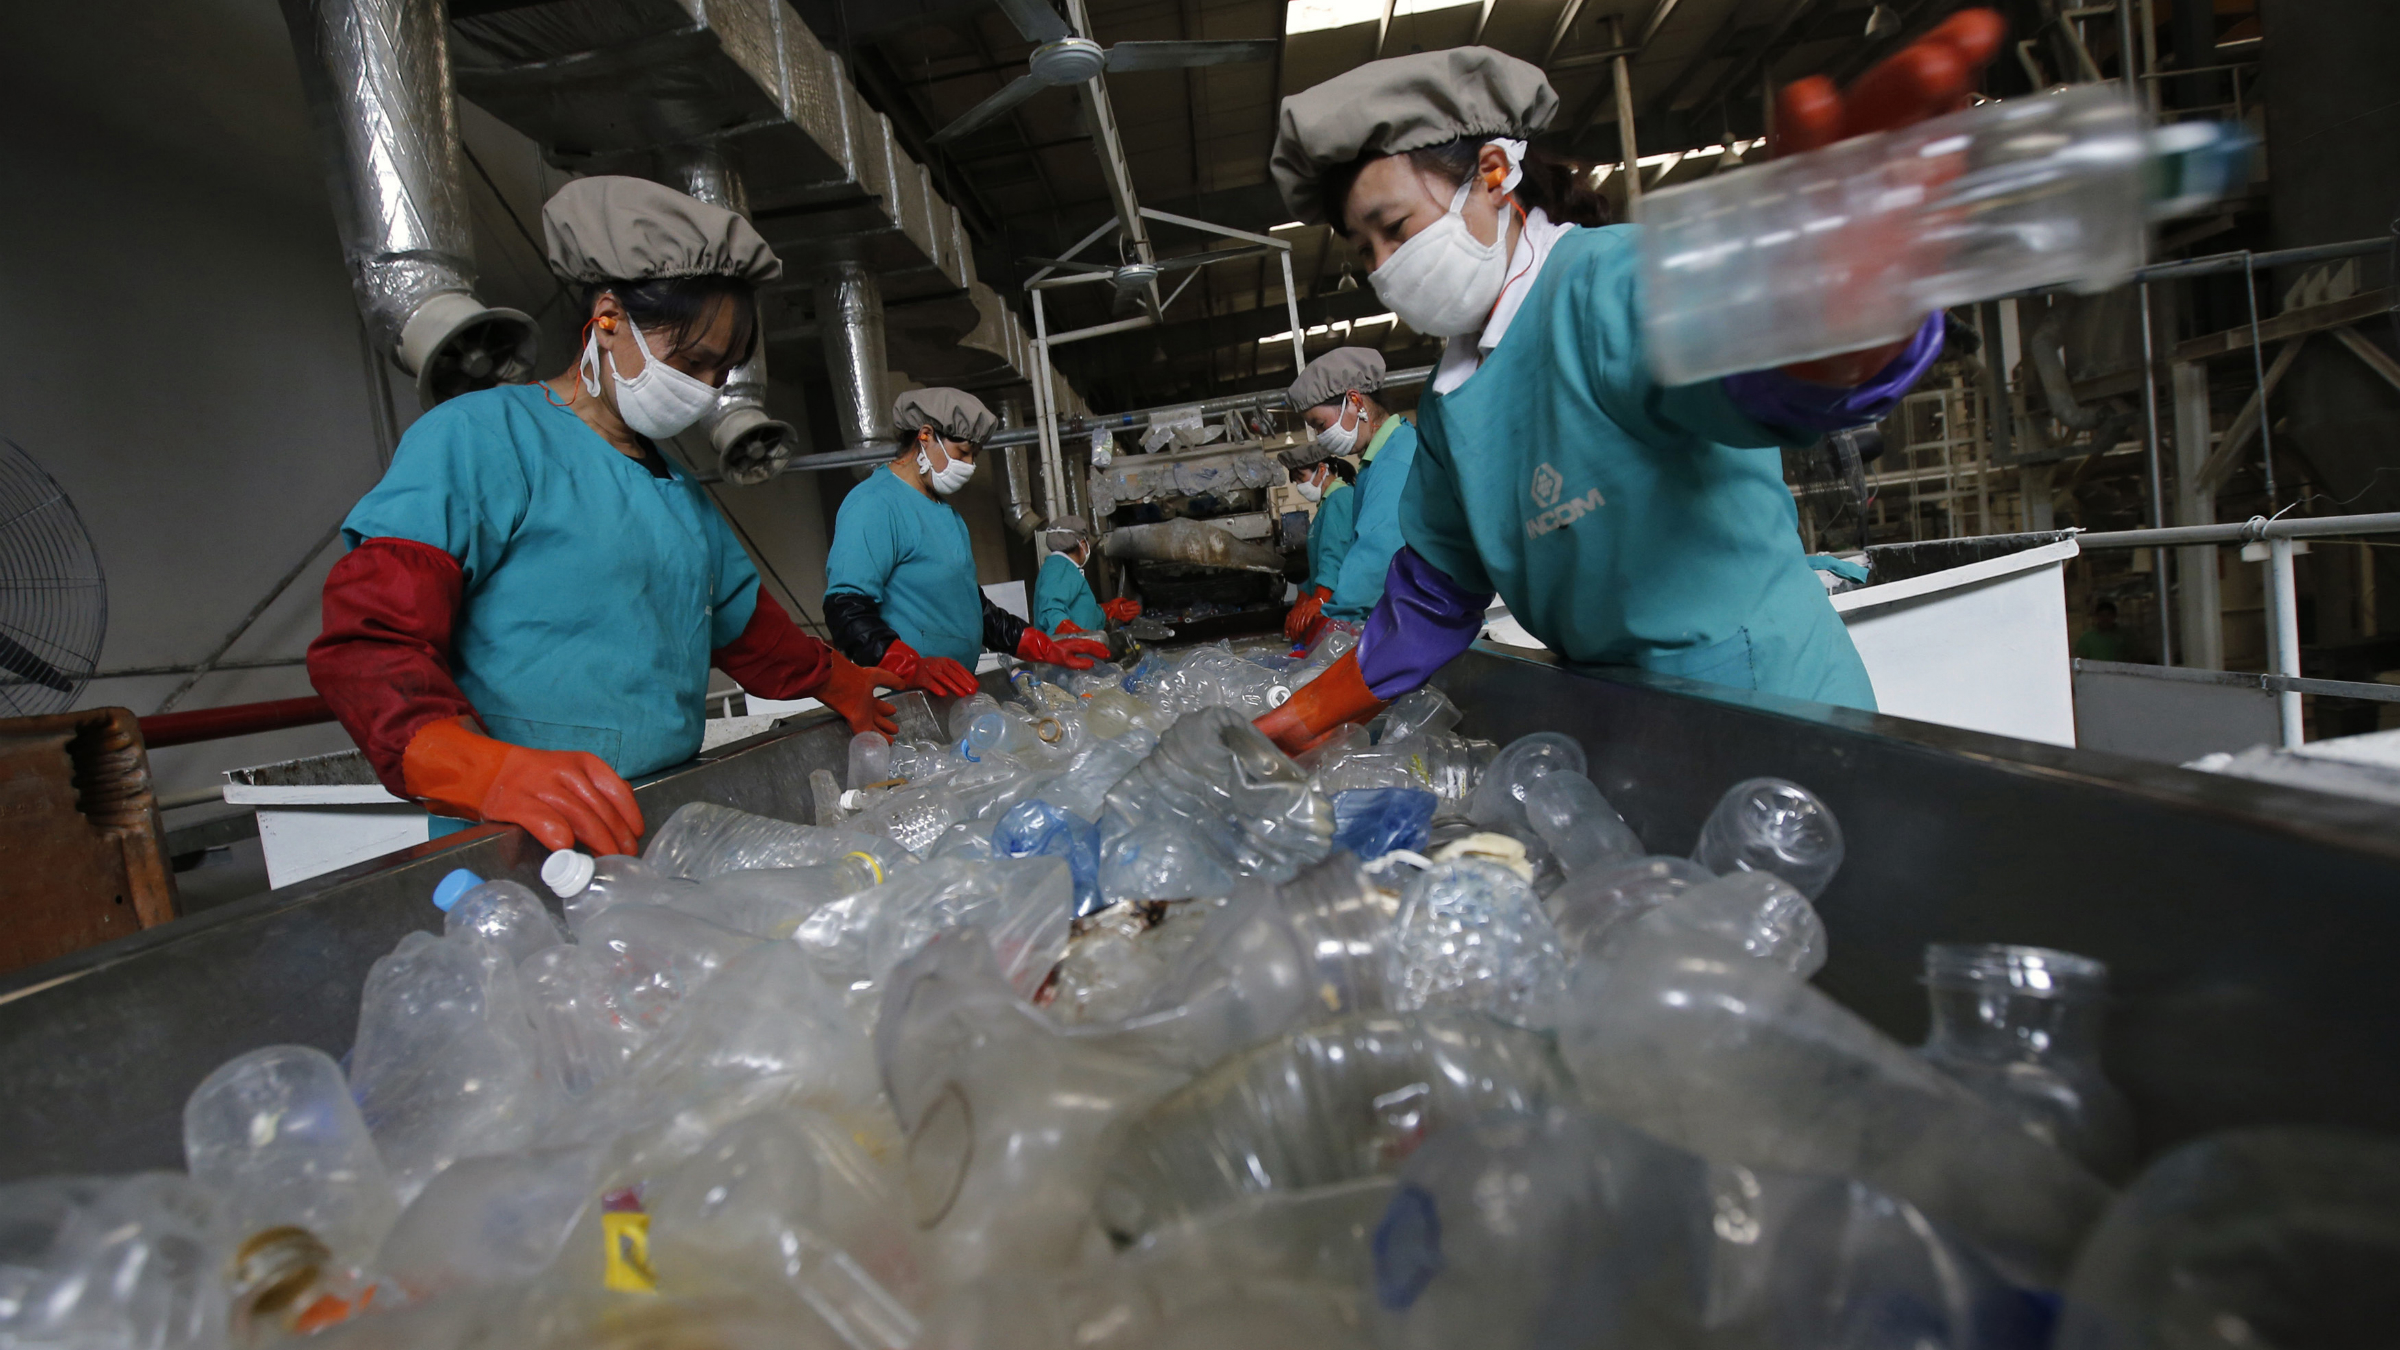 Workers sort out plastic PET bottles at Asia's largest PET plastic recycling factory INCOM Resources Recovery in Beijing May 7, 2013. According to government figures, reported in local media, about 4.67 million tons of recyclable waste was collected in Beijing in 2010. In the same year, 6.35 million tons of trash ended up in landfill in the city. World Environment Day is celebrated annually on June 5. Picture taken May 7, 2013. REUTERS/Kim Kyung-Hoon